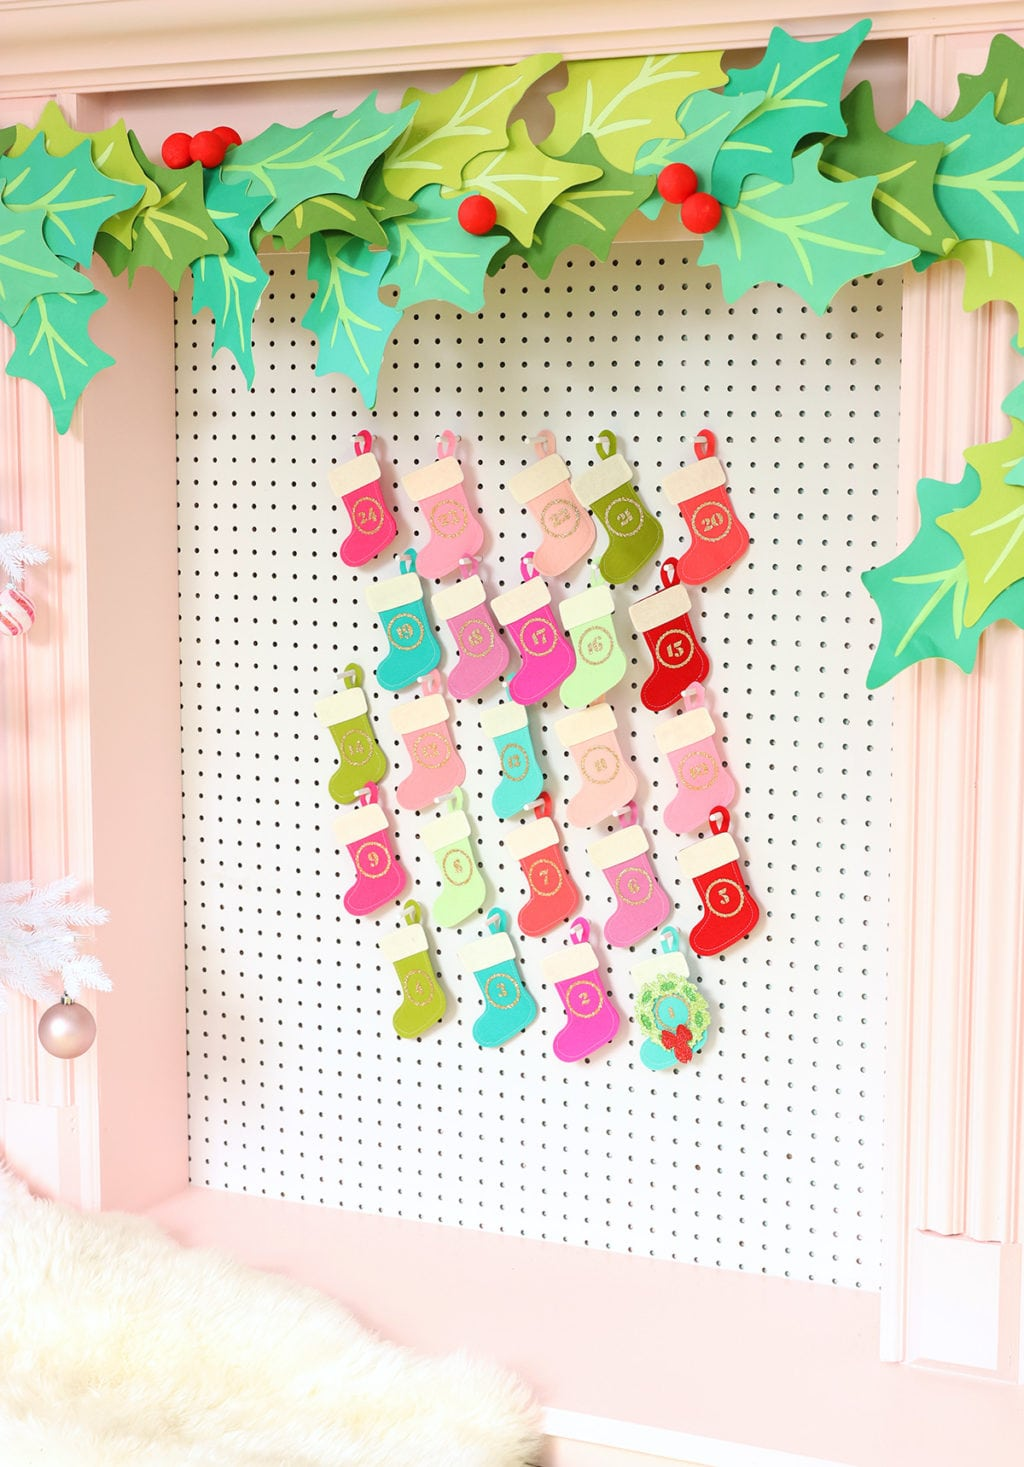 Top 10 Colourful DIY Advent Calendars - Image by Damask Love on Squirrelly Minds